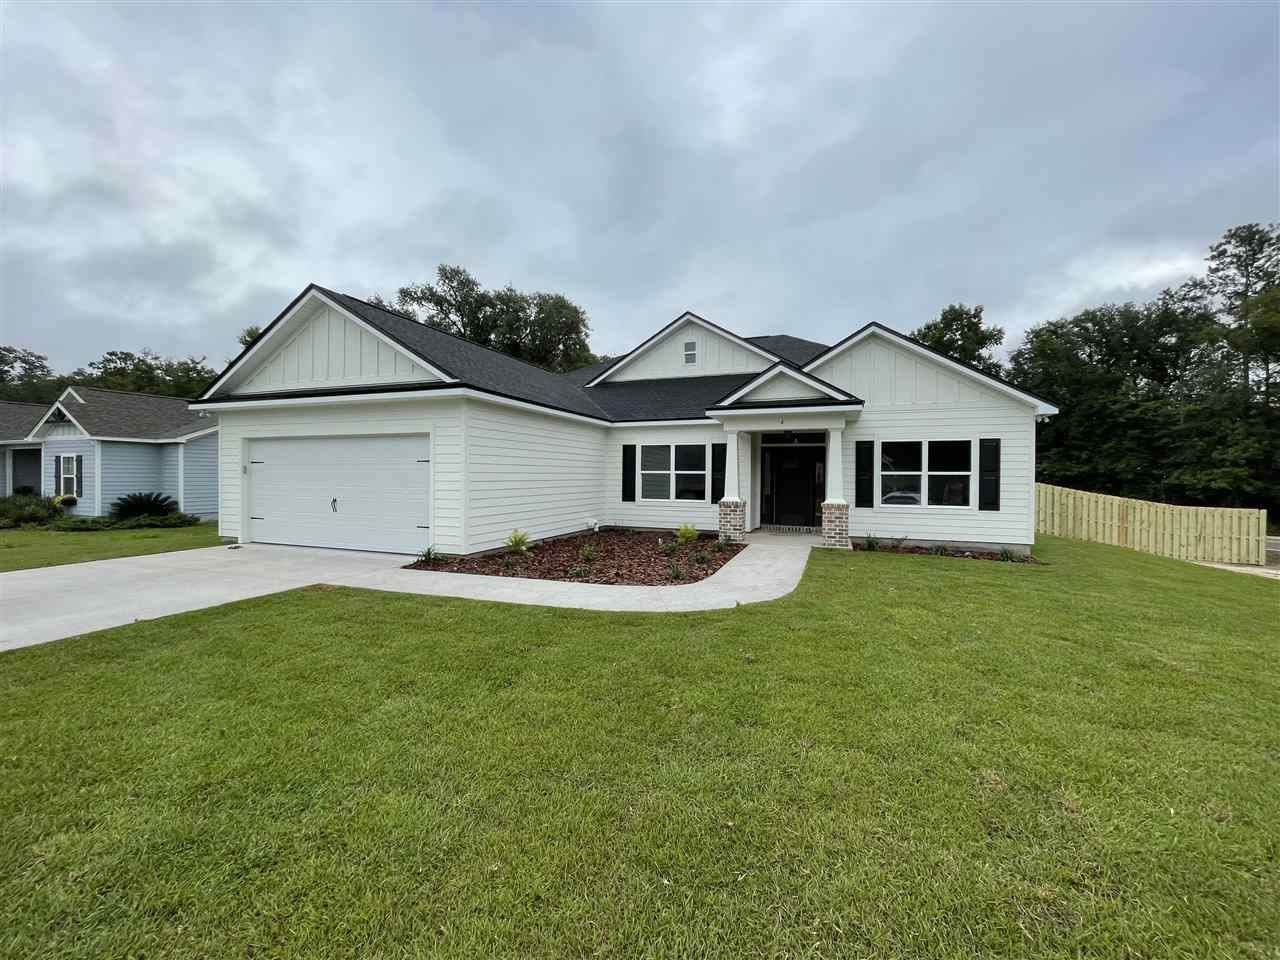 4 Savannah Forest Circle, Crawfordville, FL 32327 - MLS#: 327915